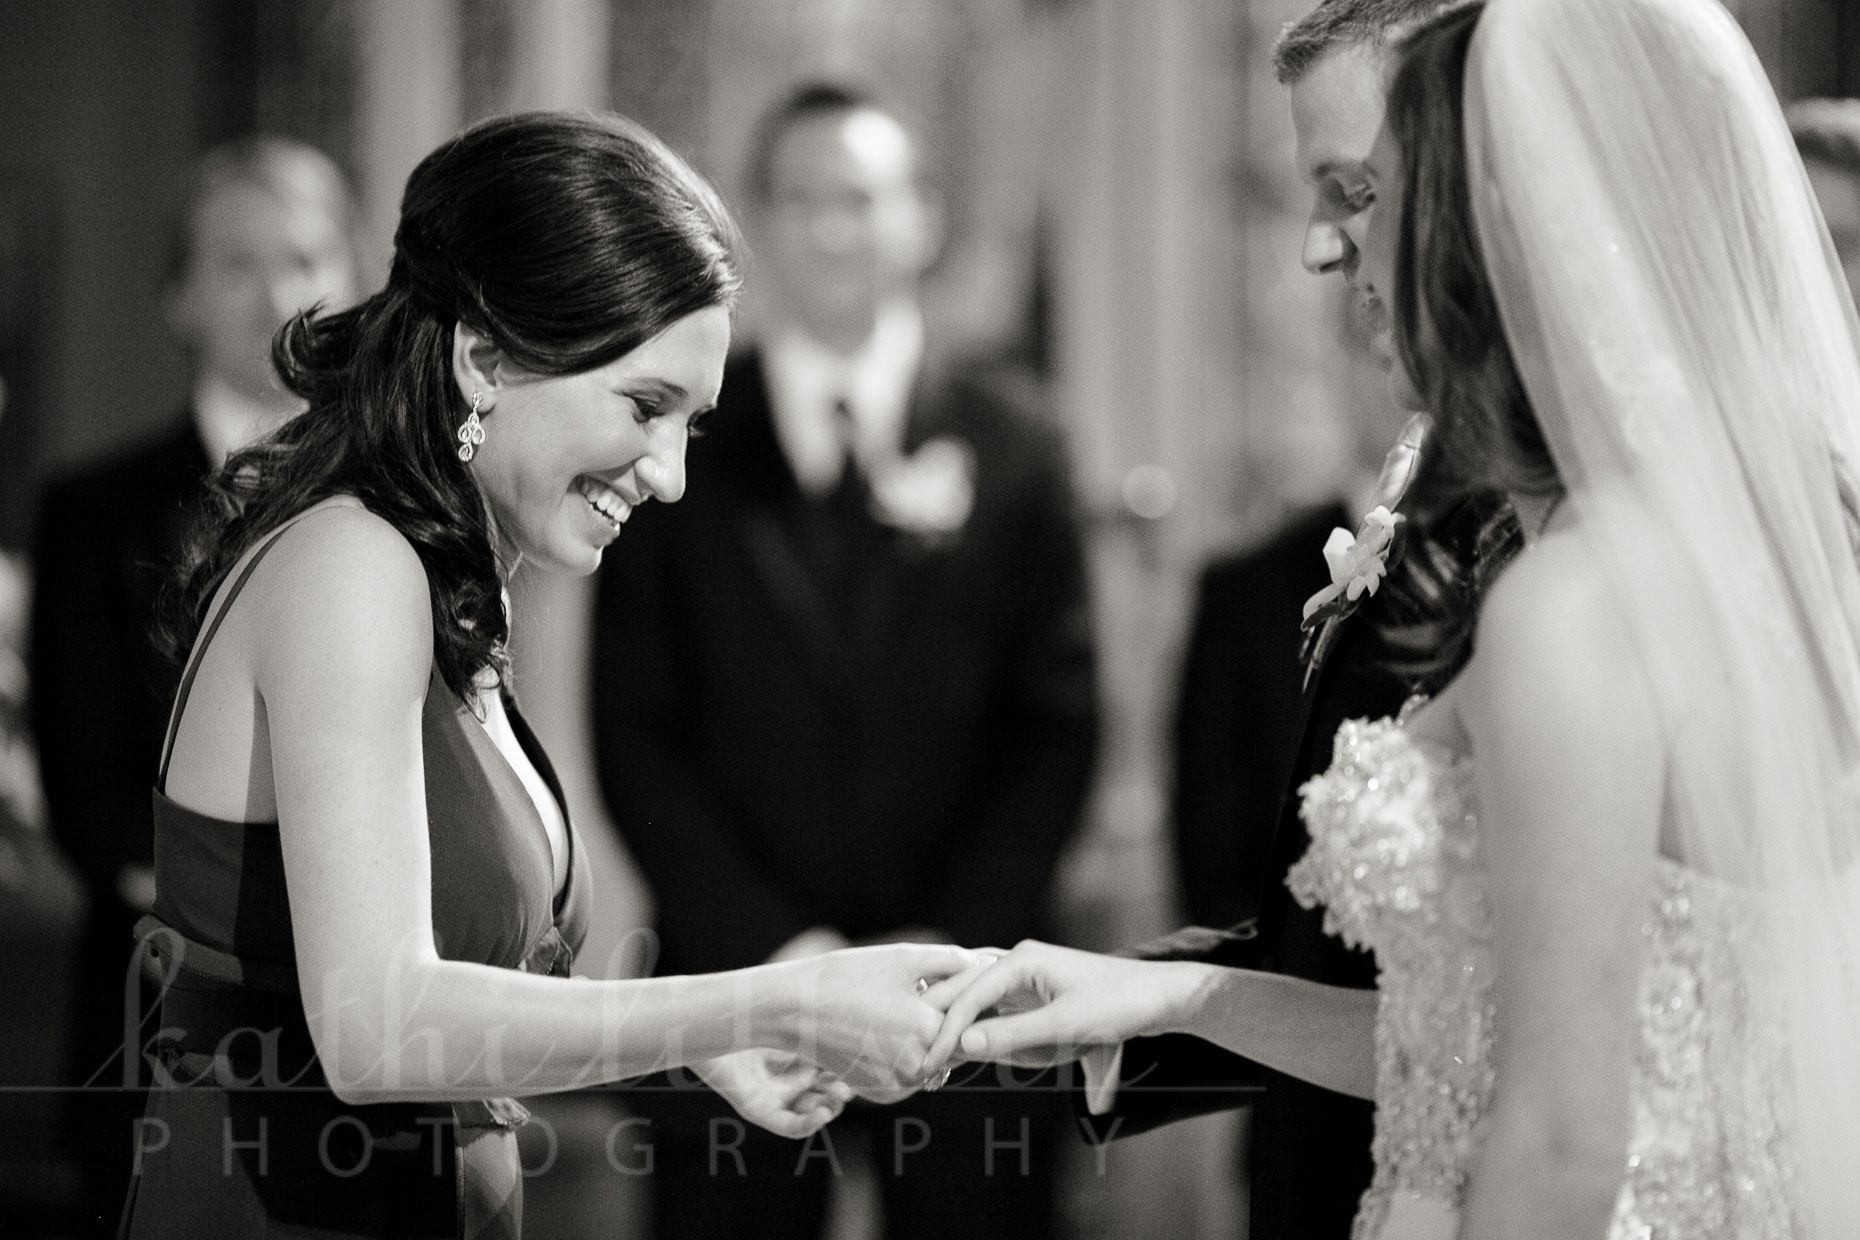 Kathi_Littwin_Photography_Plaza_NYC_Wedding-2046